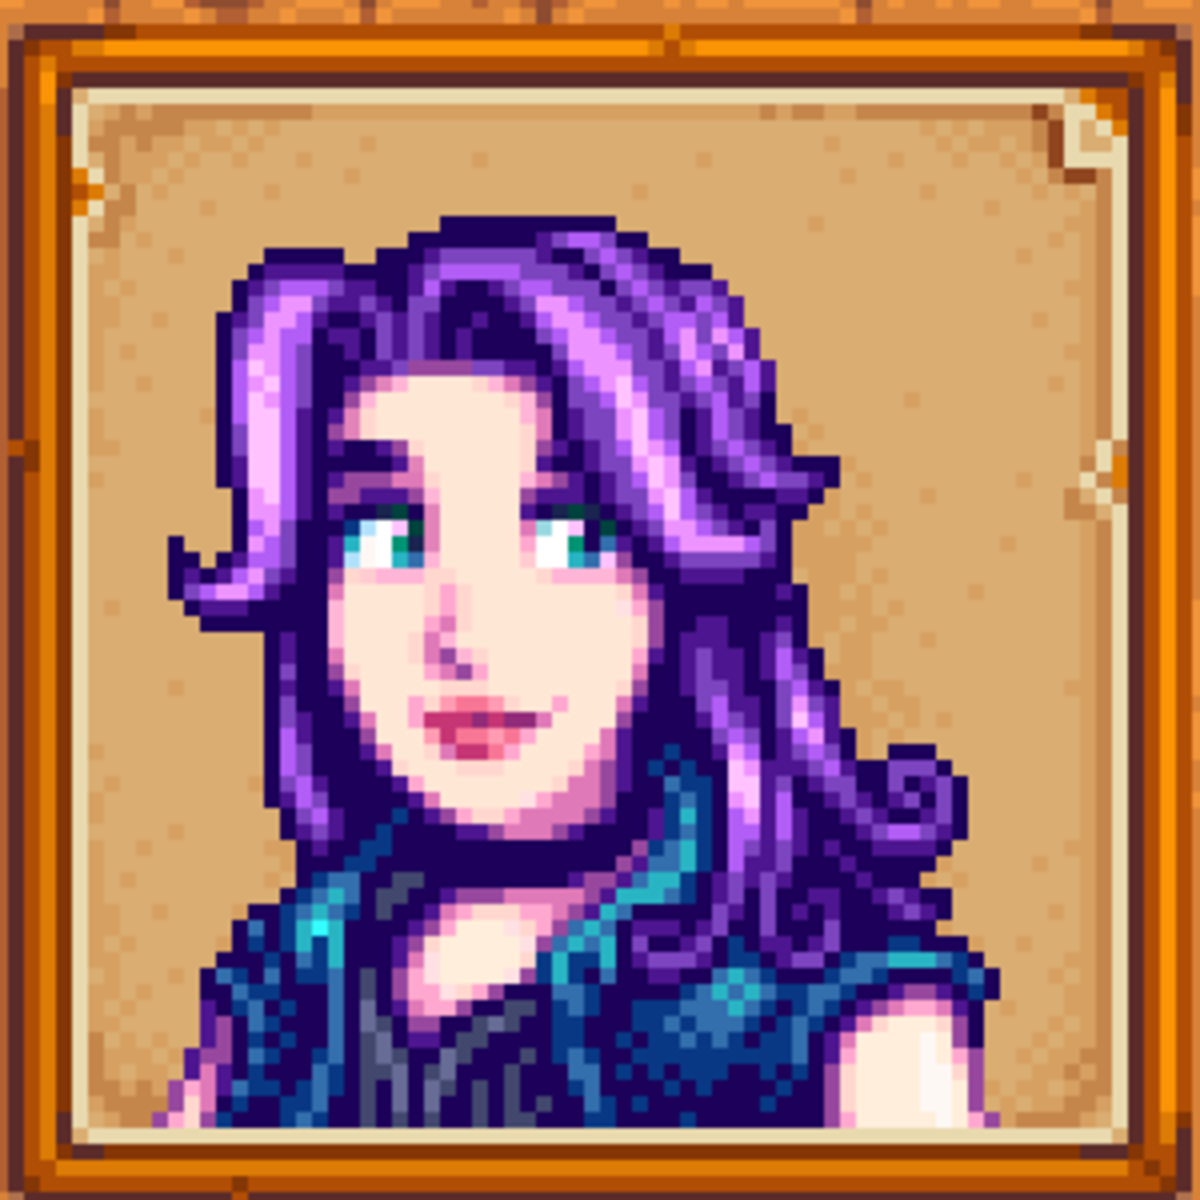 Abigail is the daughter of Pierre and Caroline and lives at Pierre's General Store.